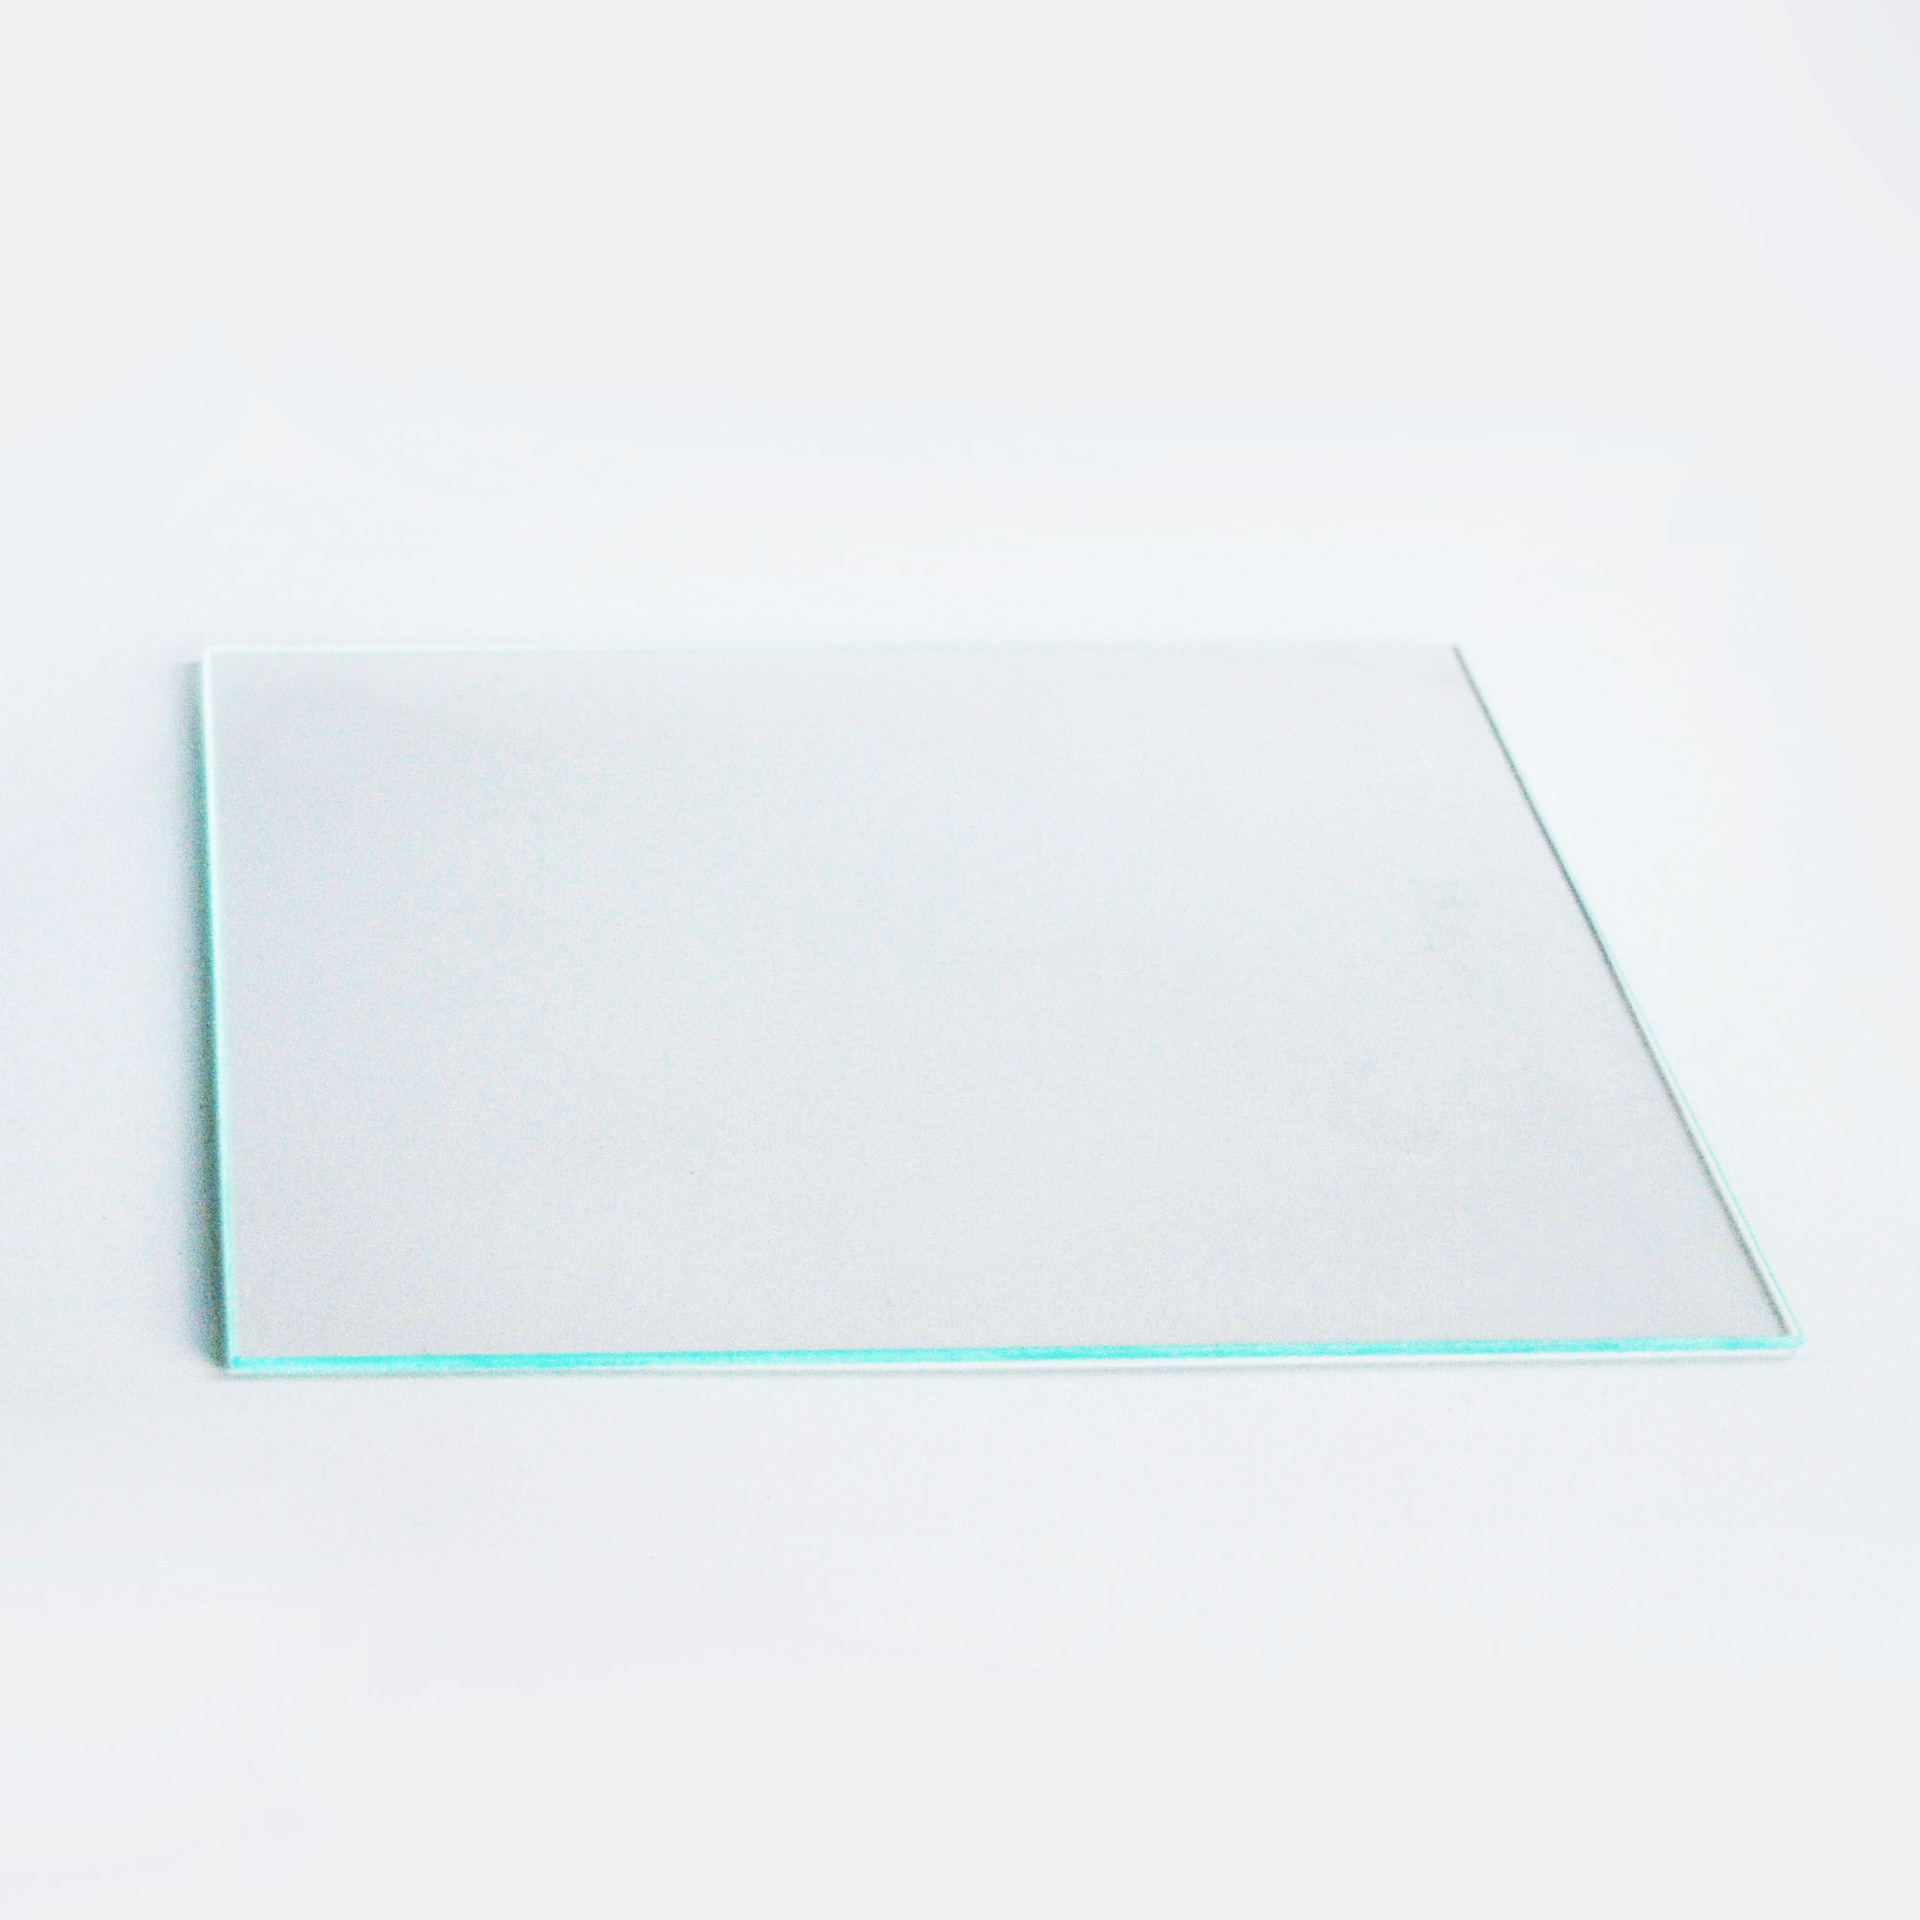 214*214 213*200 <font><b>300*200</b></font> 300*300*3mm Tempered glass <font><b>heatbed</b></font> Borosilicate Glass Plate For RepRap CR10 3d printer parts hotbed image